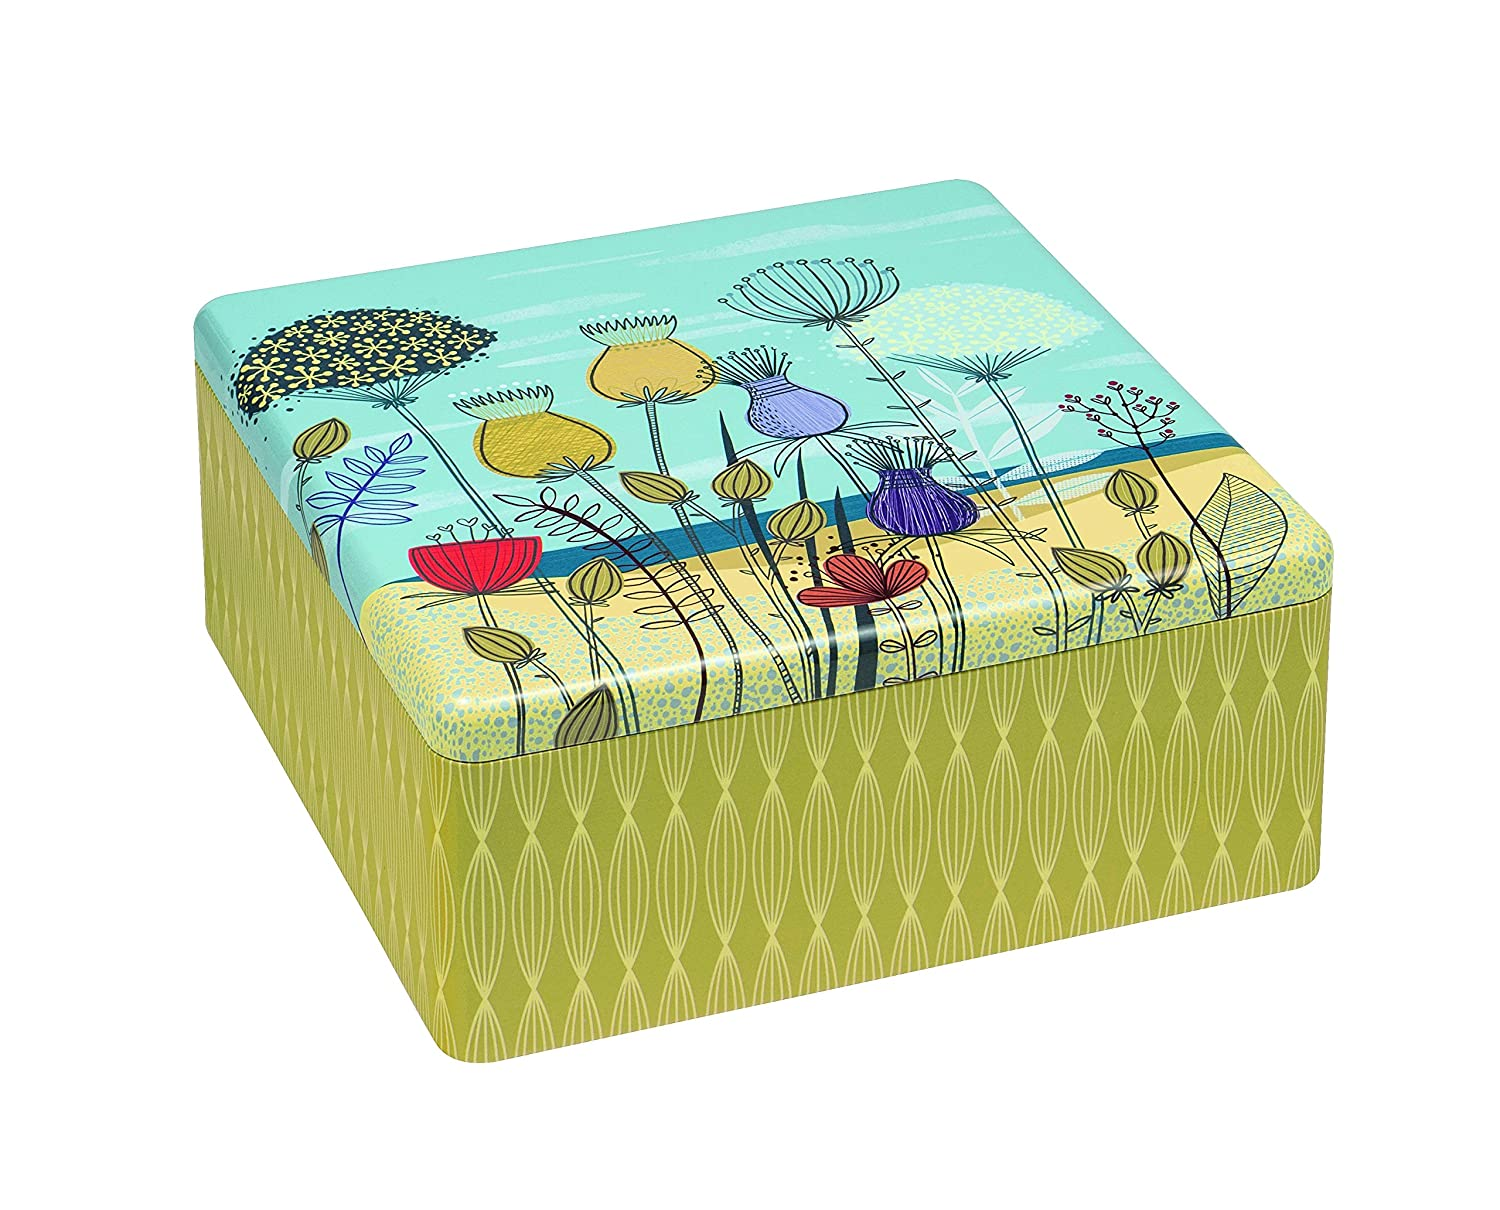 ST KILDA Sand Dunes FLOWER DESIGN Square Biscuit Tin / Cookie / Cake Tin / Kitchen Storage Tin - 22cm by St Kilda STK2118